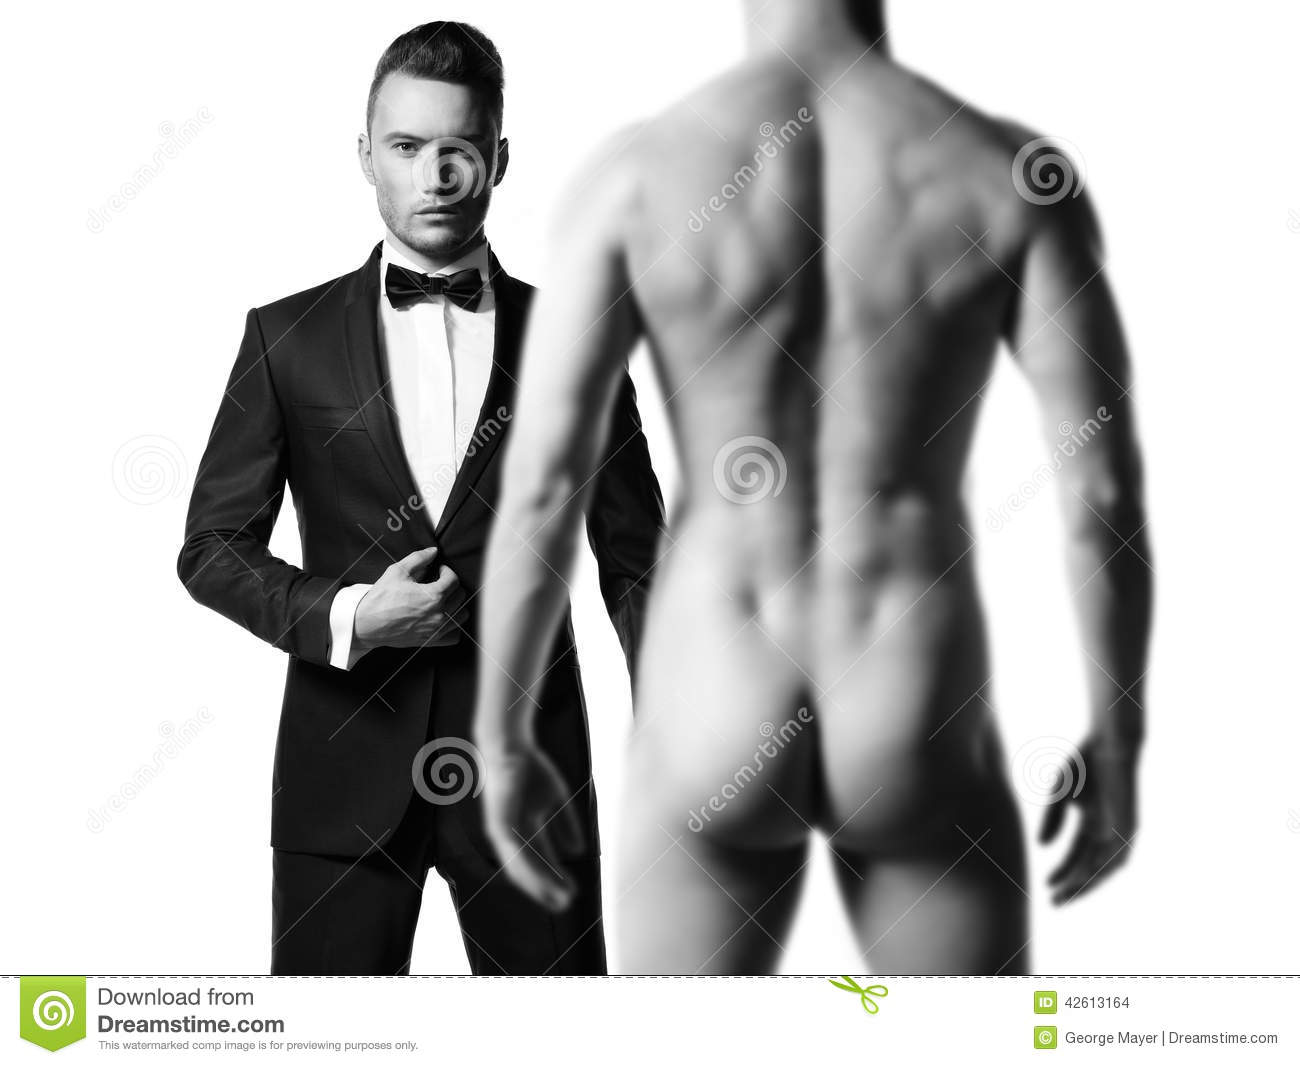 Nude male advertising